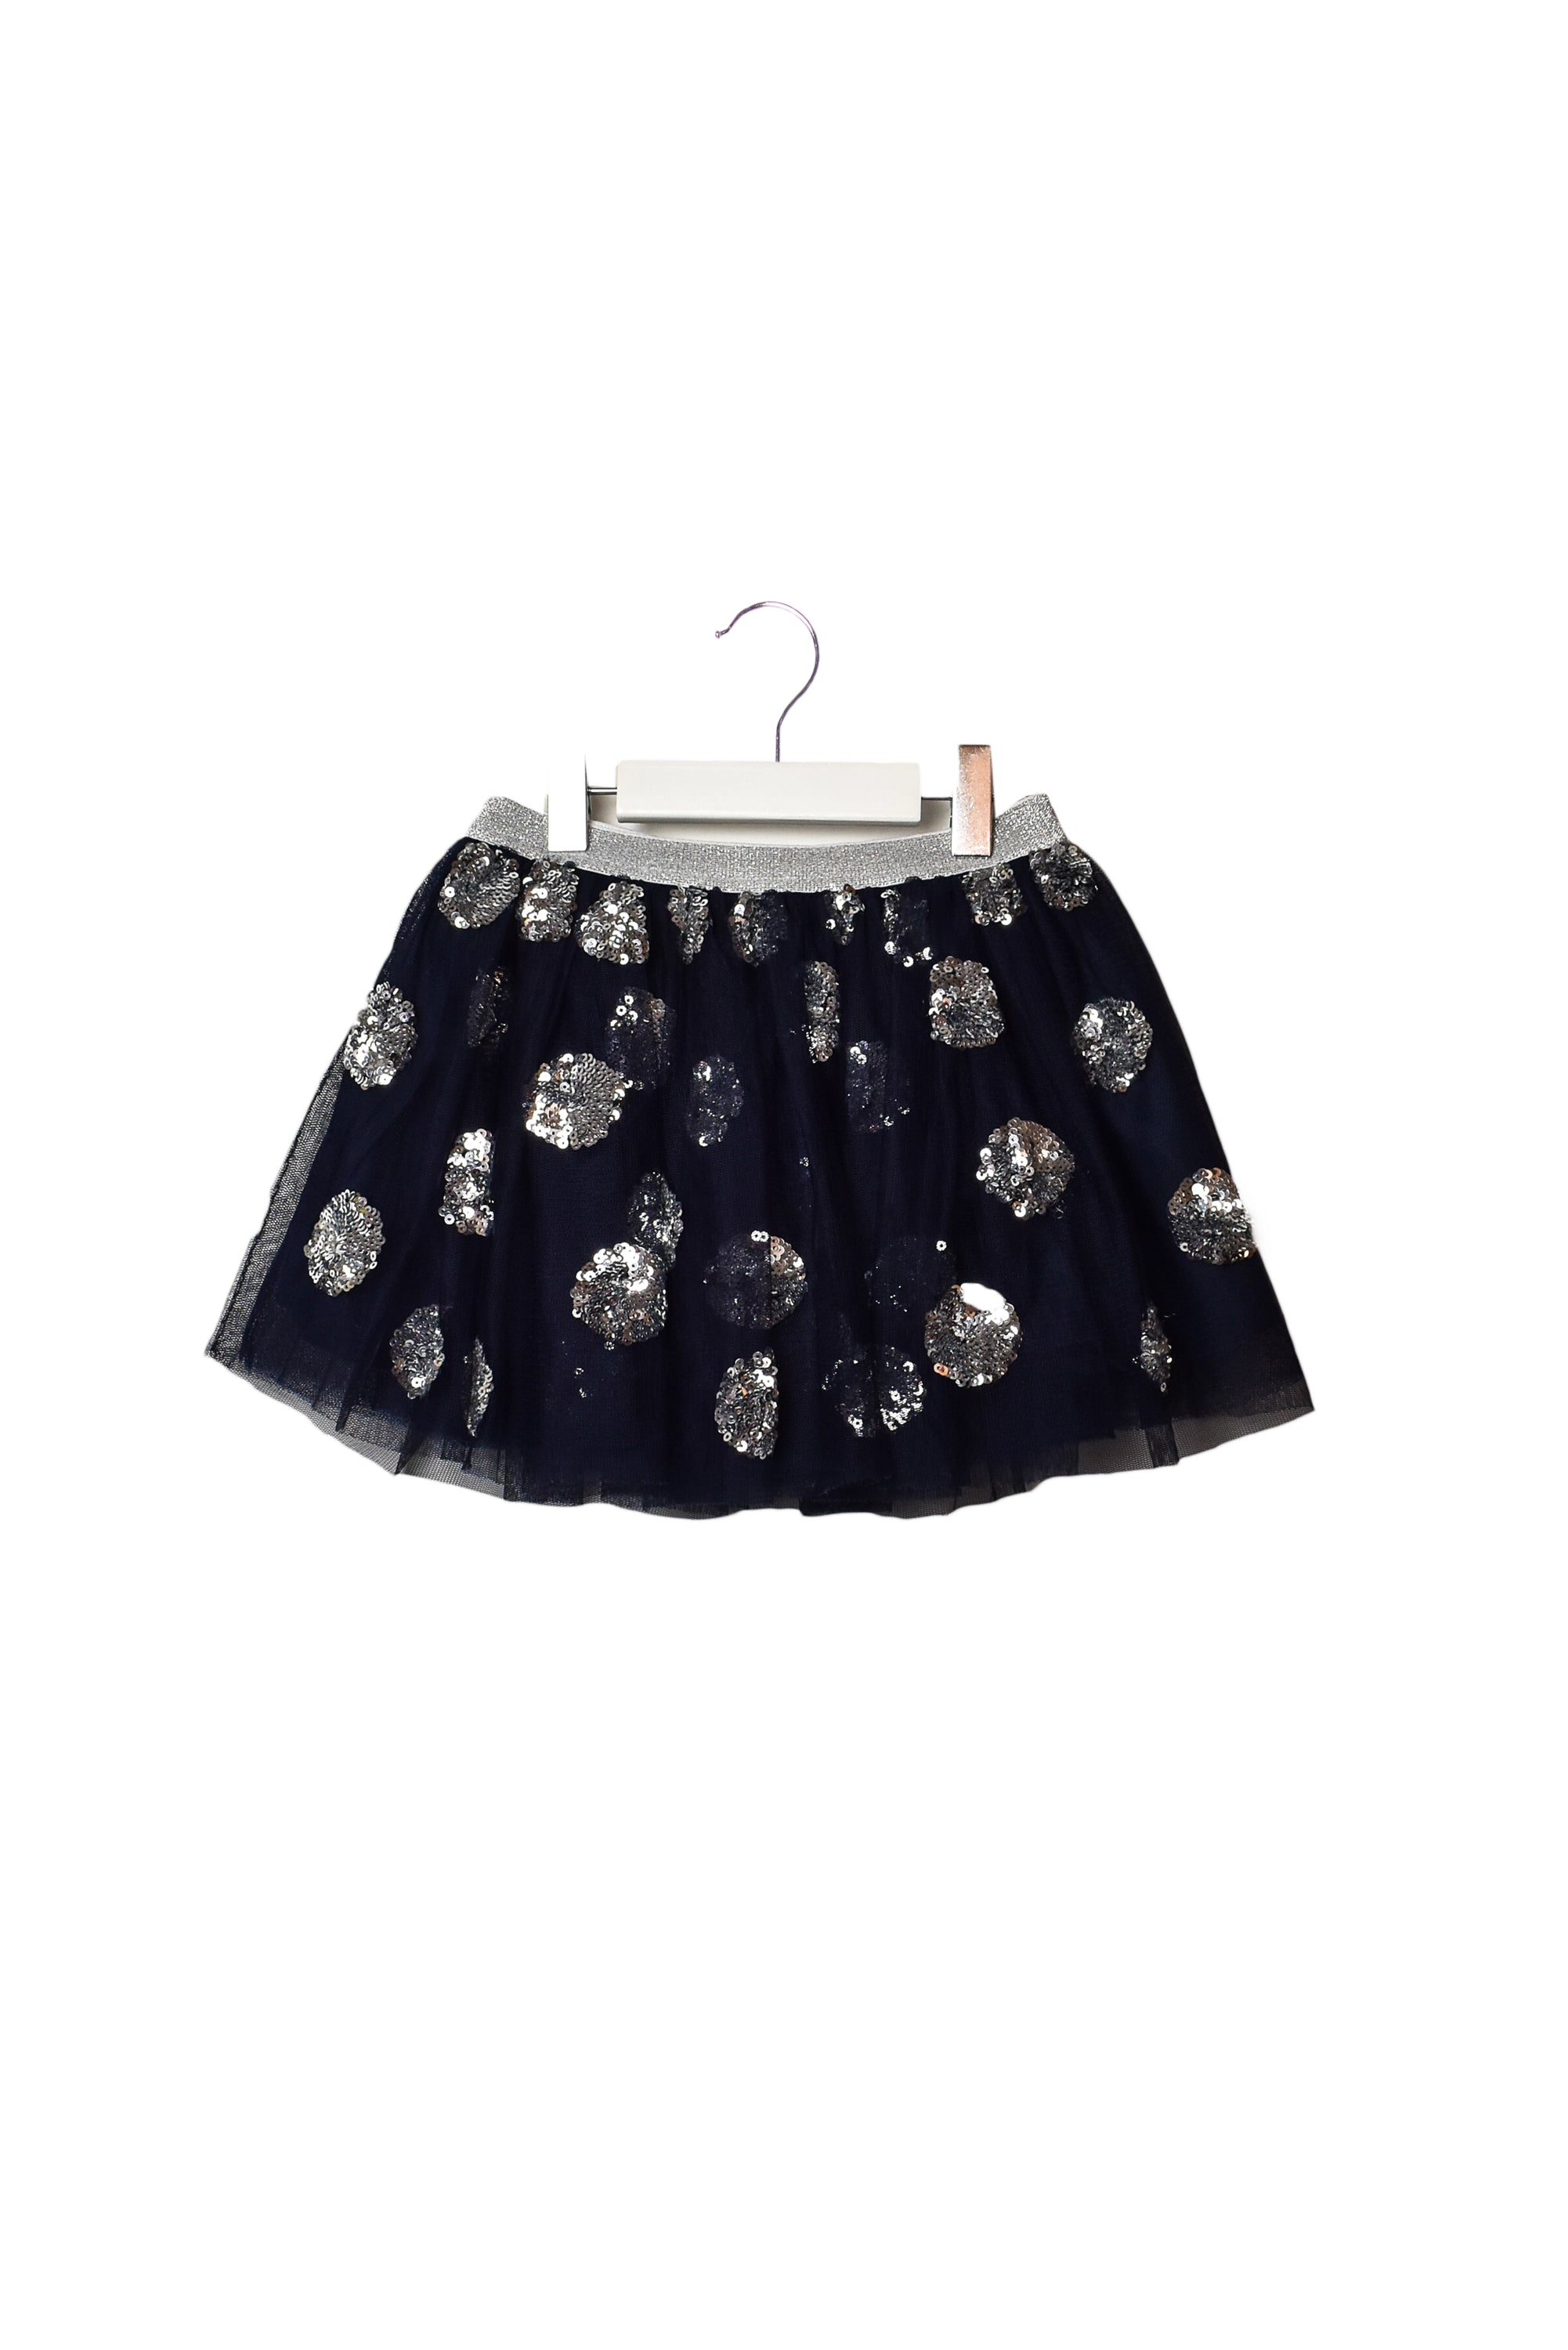 10008352 Seed Kids~Skirt 4-5T at Retykle